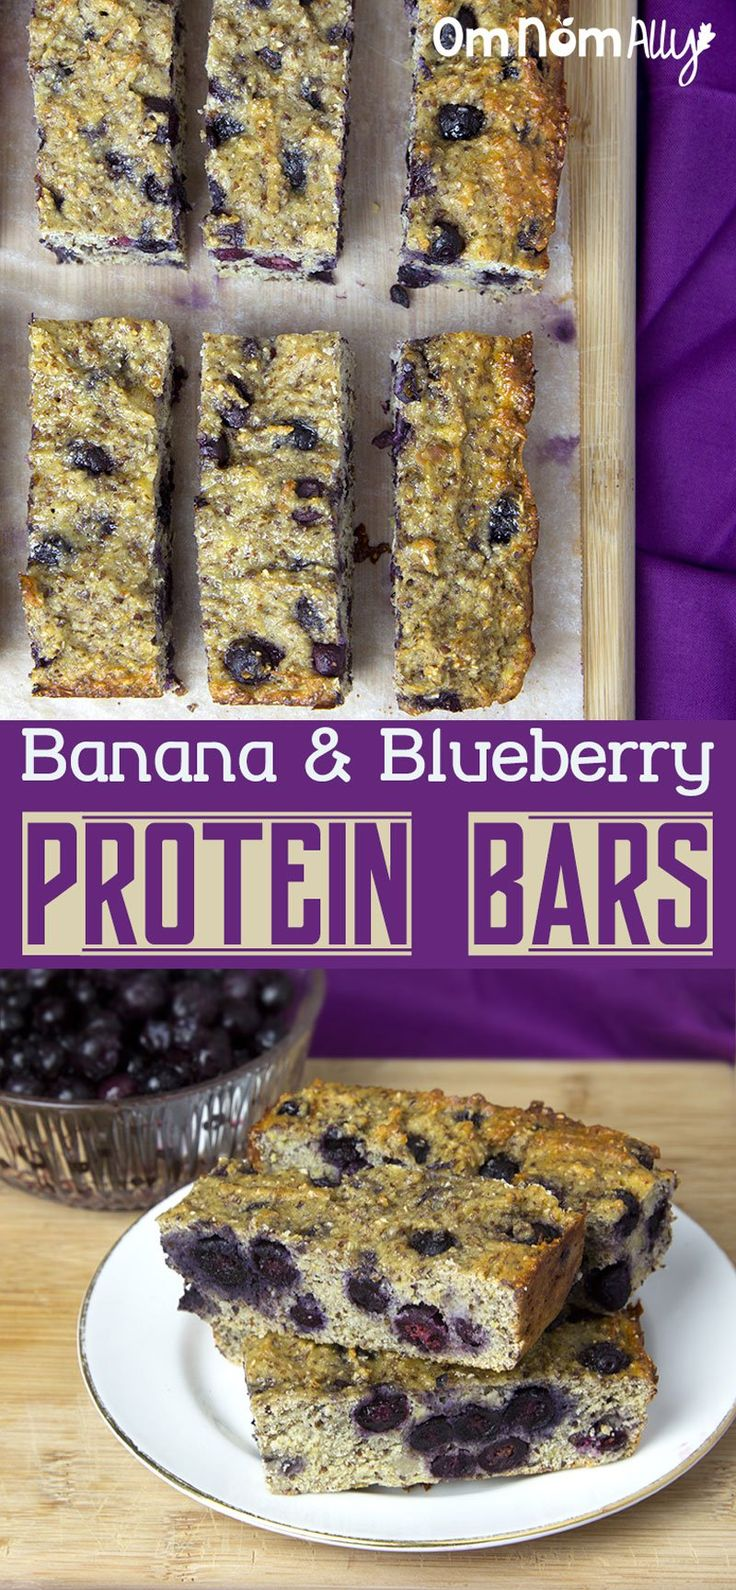 Banana & Blueberry Protein Bars @OmNomAlly                                                                                                                                                      More